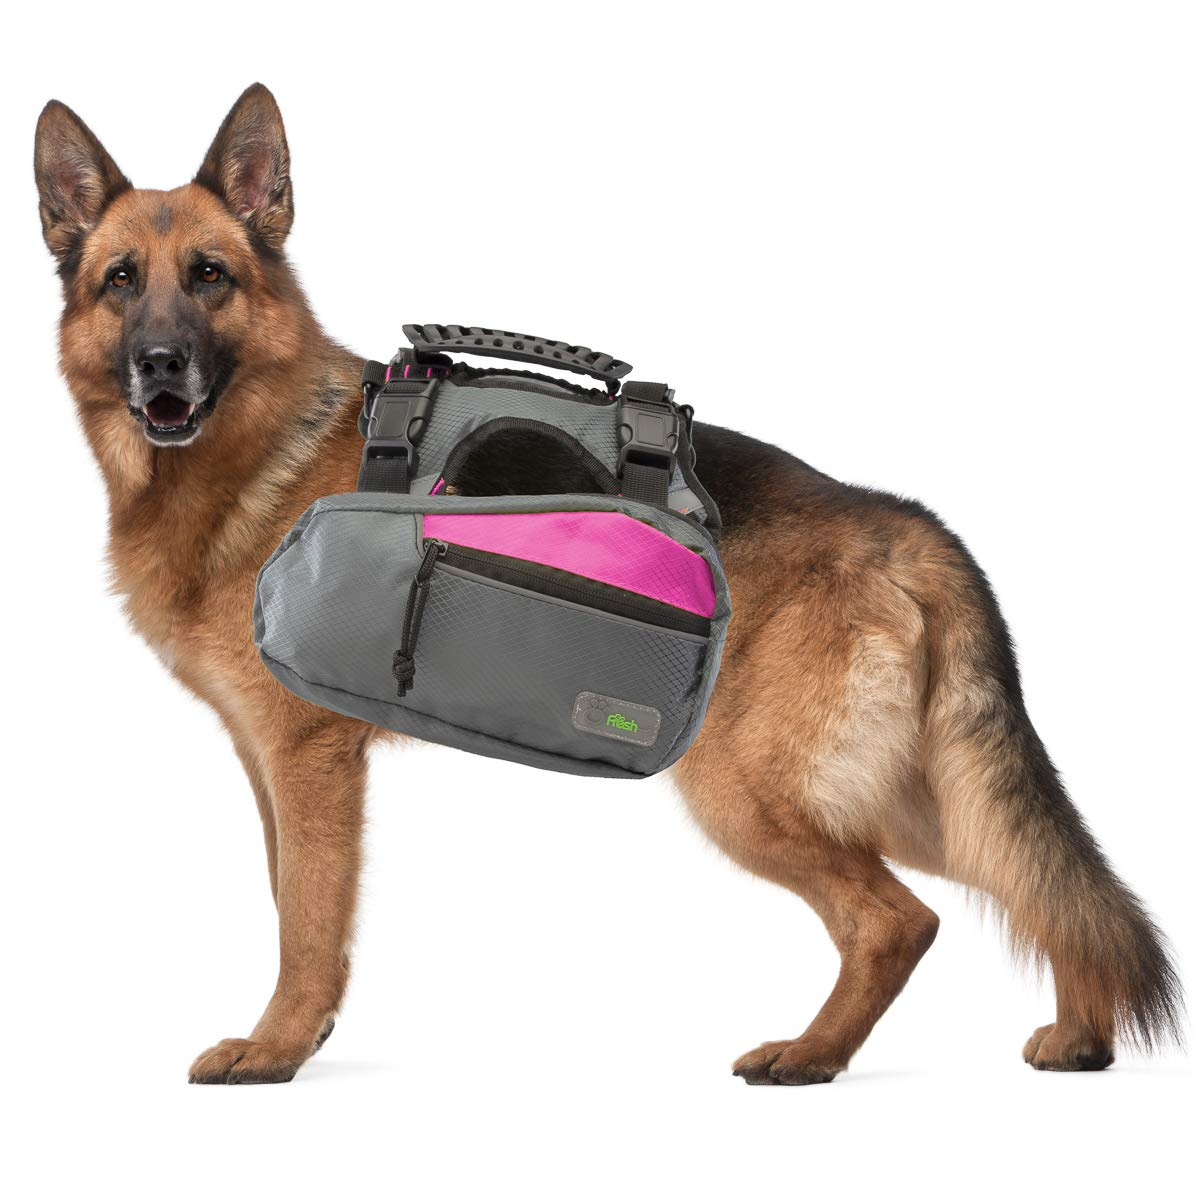 Go Fresh Pet Trail Pack Backpack & Harness Dog Walking & Hiking Gear Saddlebags Pockets Reflective